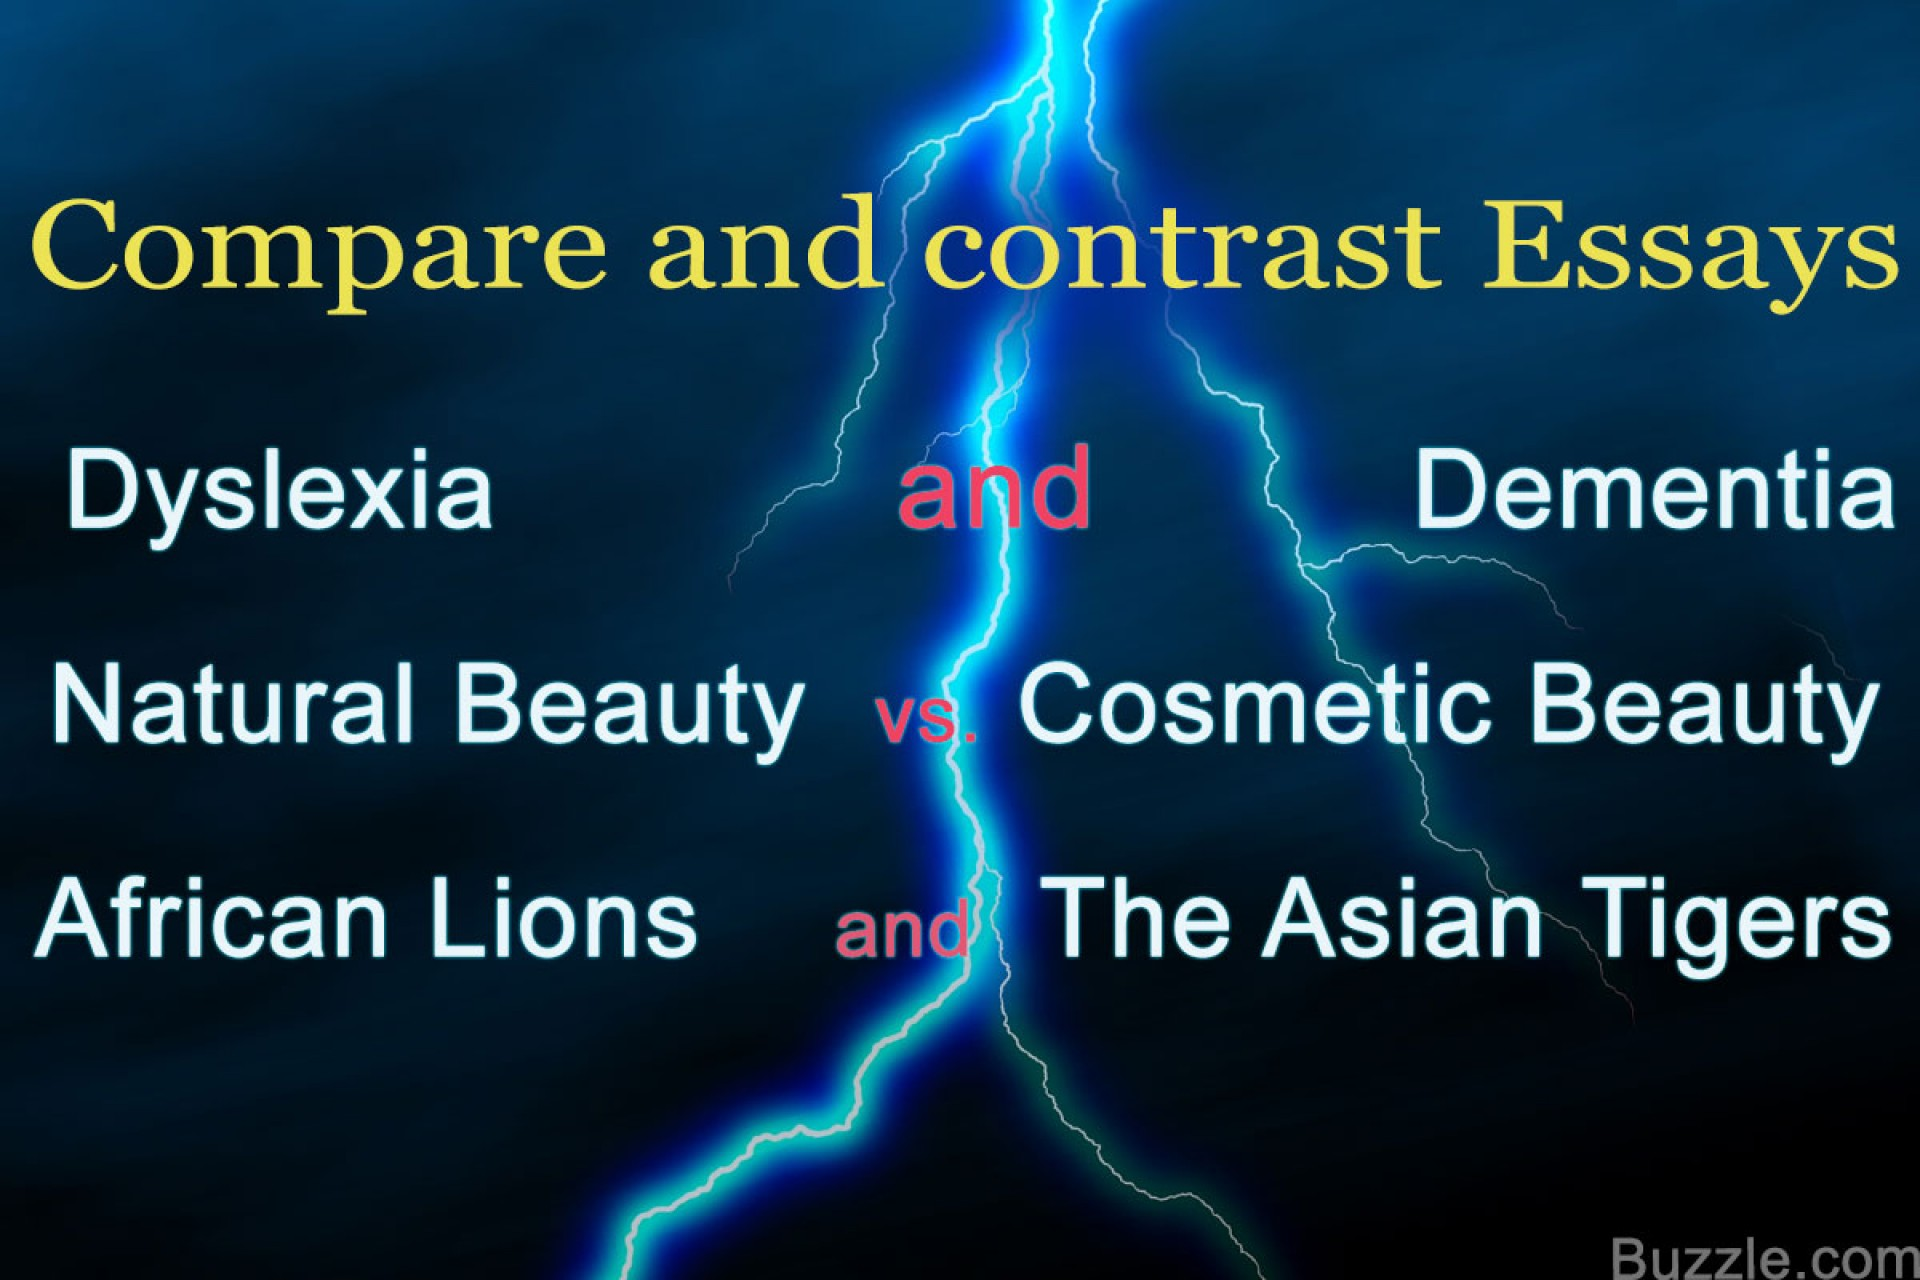 007 Compare Contrast Topics List Of And Essay Example Magnificent Comparison For Esl Students Ielts Technology 1920